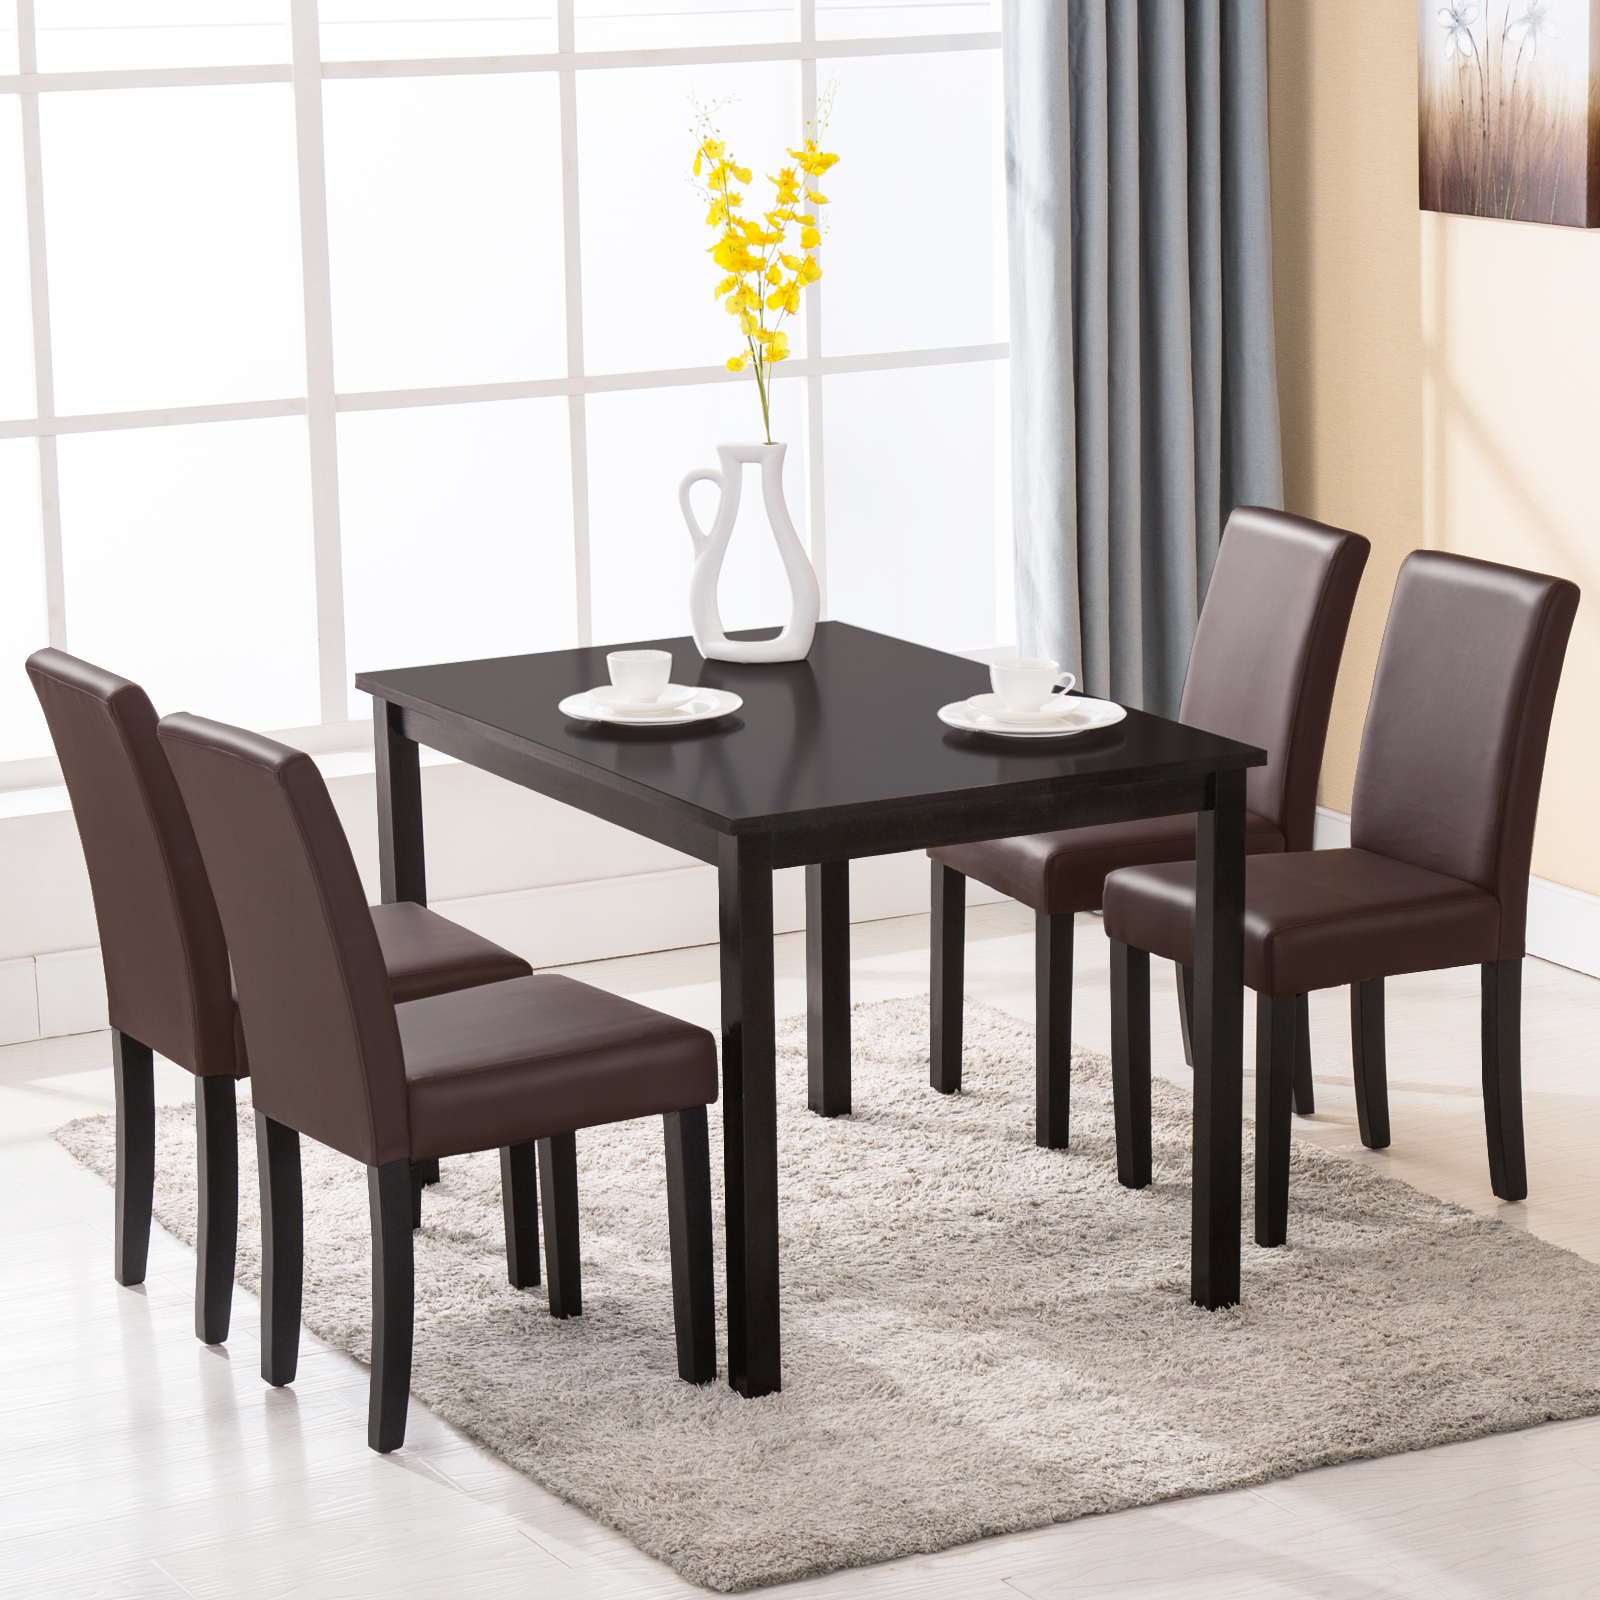 5 piece wood dining table set 4 chairs dinette room for 3 piece dining room table